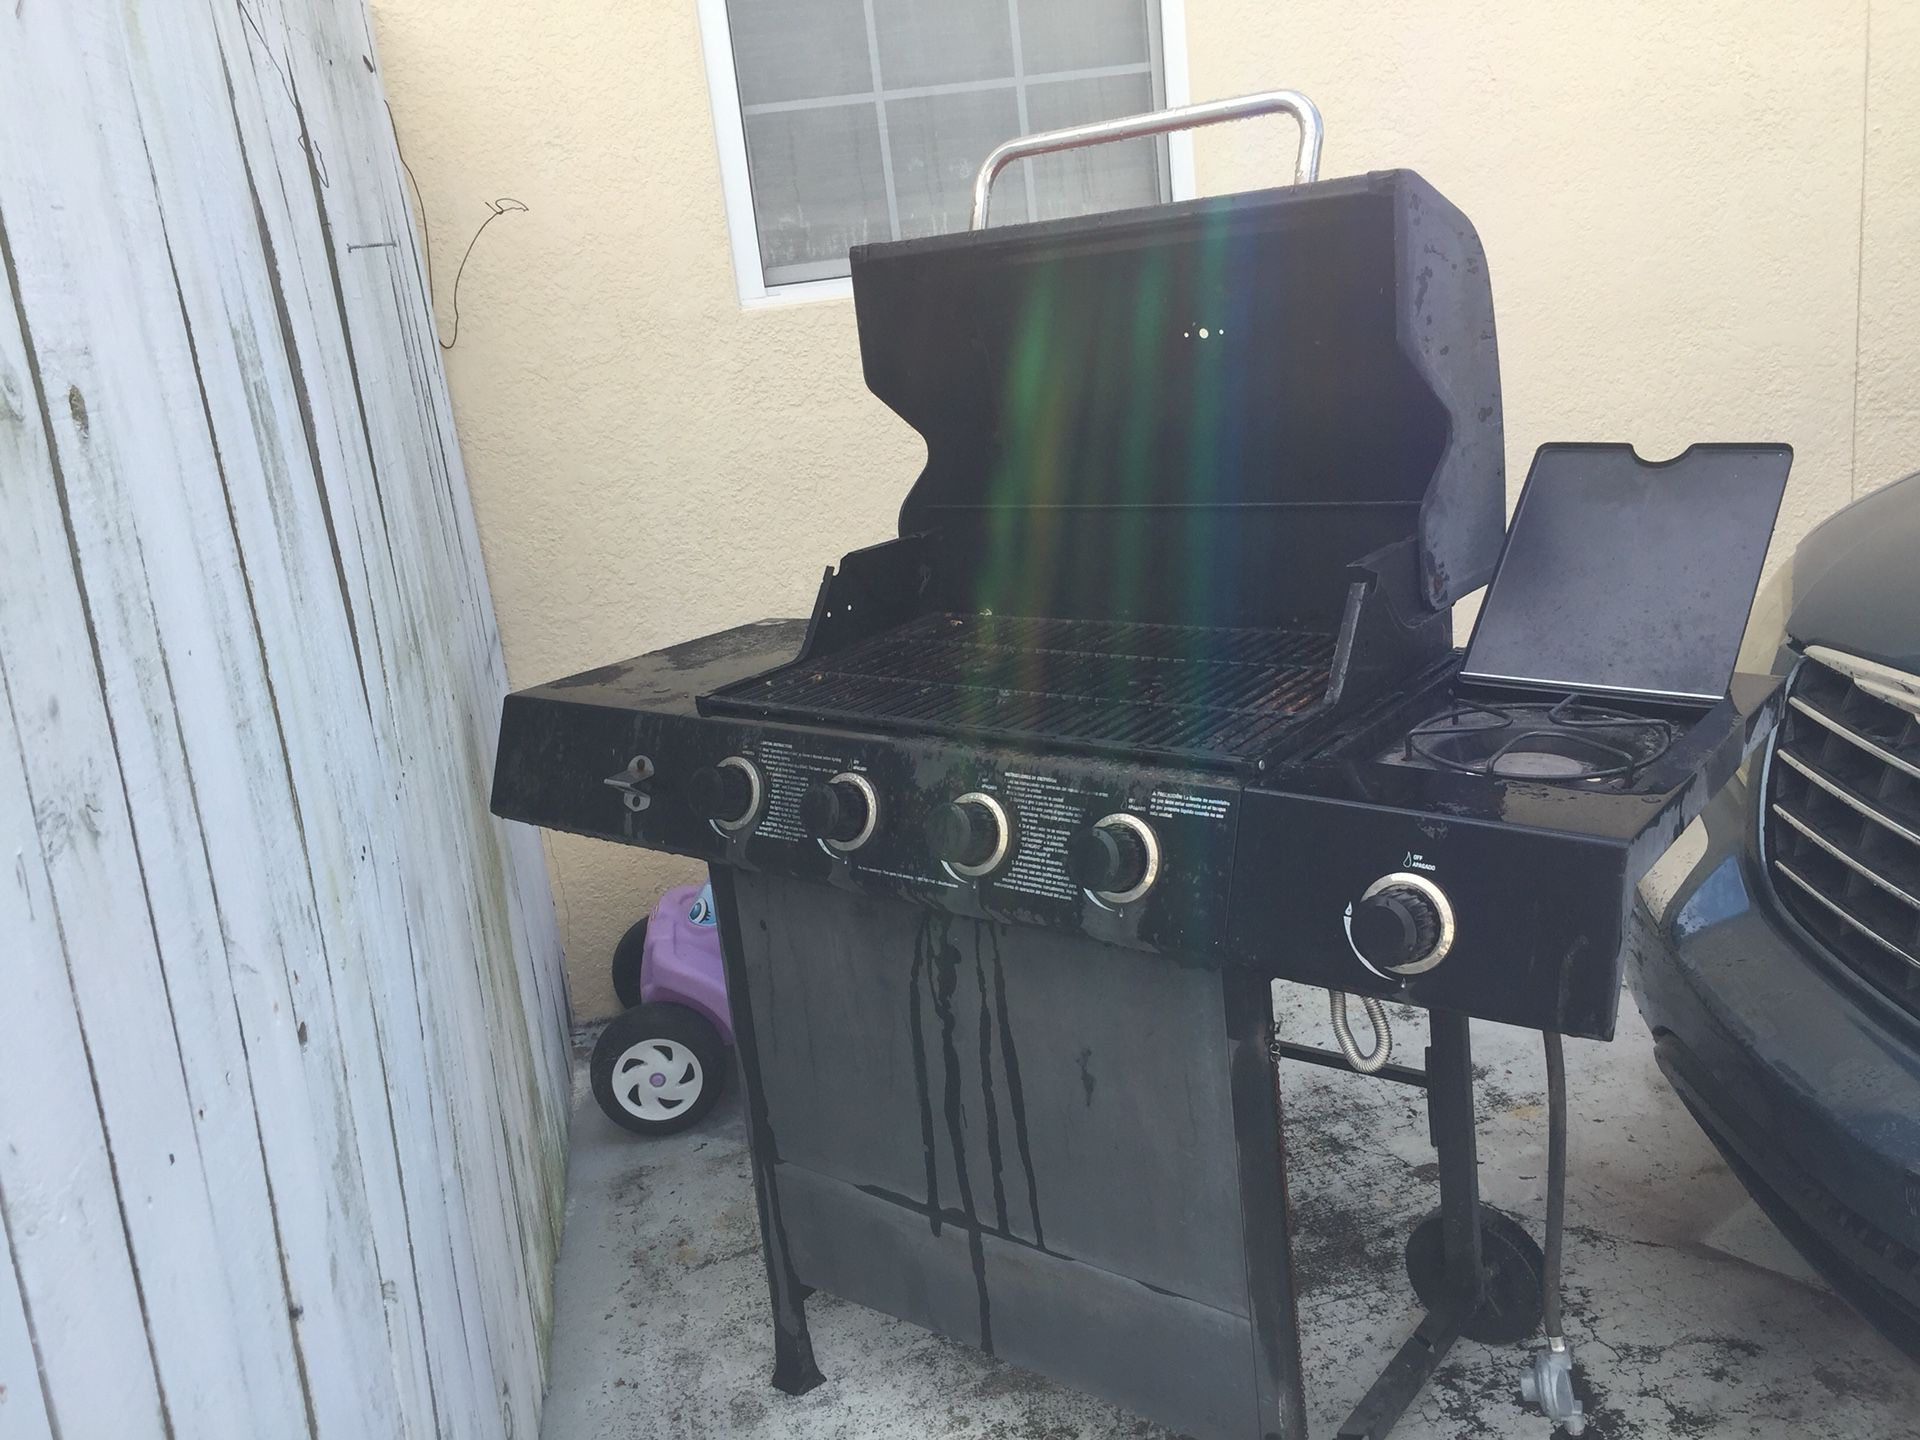 I'm selling this grill is a real good condition for $75 gas grill